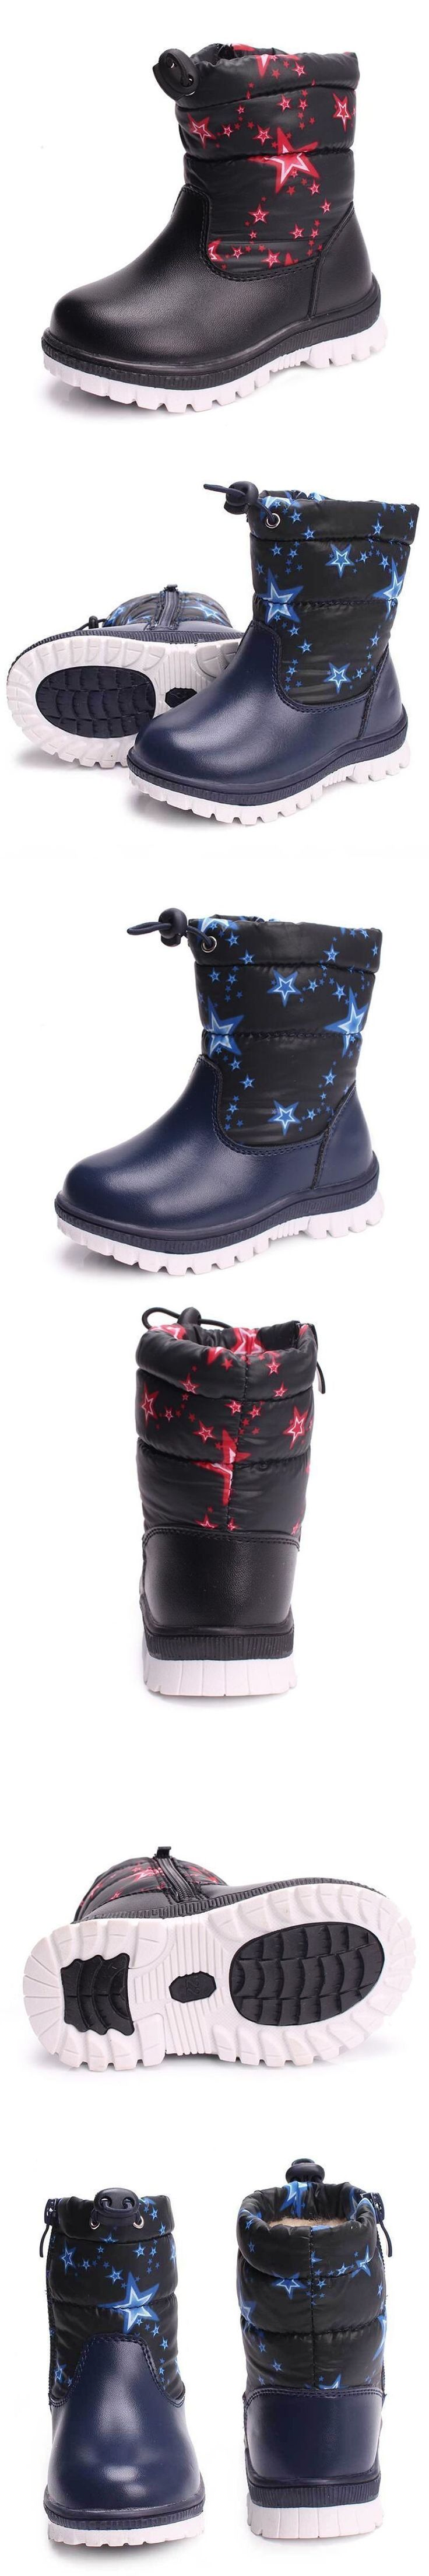 Boys & Girls Winter Shoes Kids Snow Boots Waterproof Non-slip Children Boots Toddler Print Thick Plush Shoes Black #toddlersnowbootsboy #toddlerbootsboy #childrensnow #toddlersnowbootsgirl